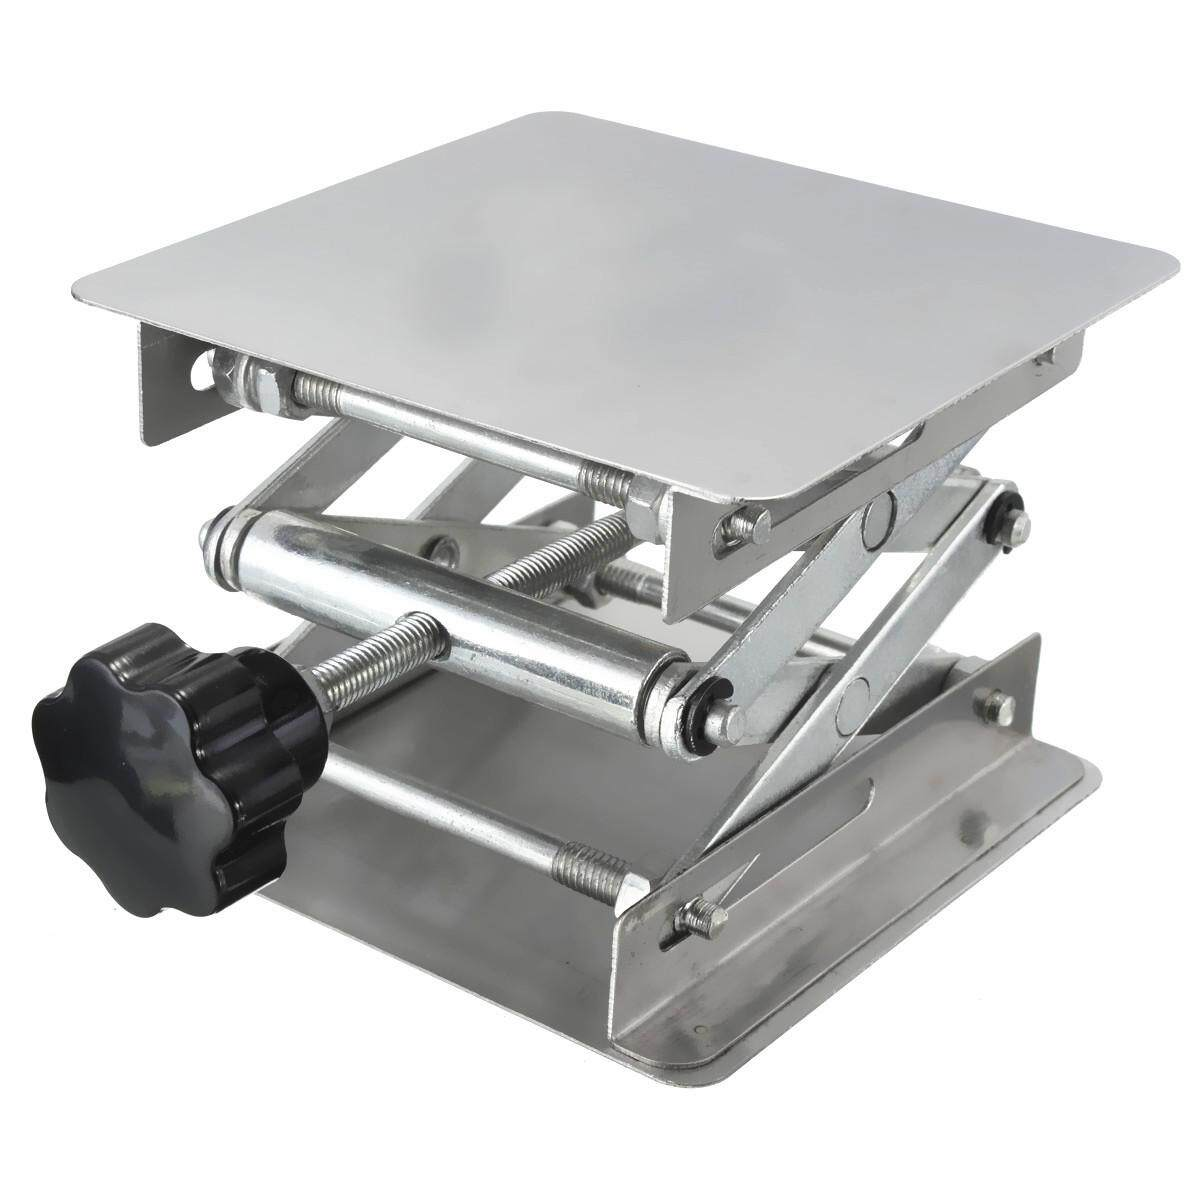 Lab-Lift Lifting Platforms Stand Rack Scissor Lab-Lifting Stainless Steel 4×4inch